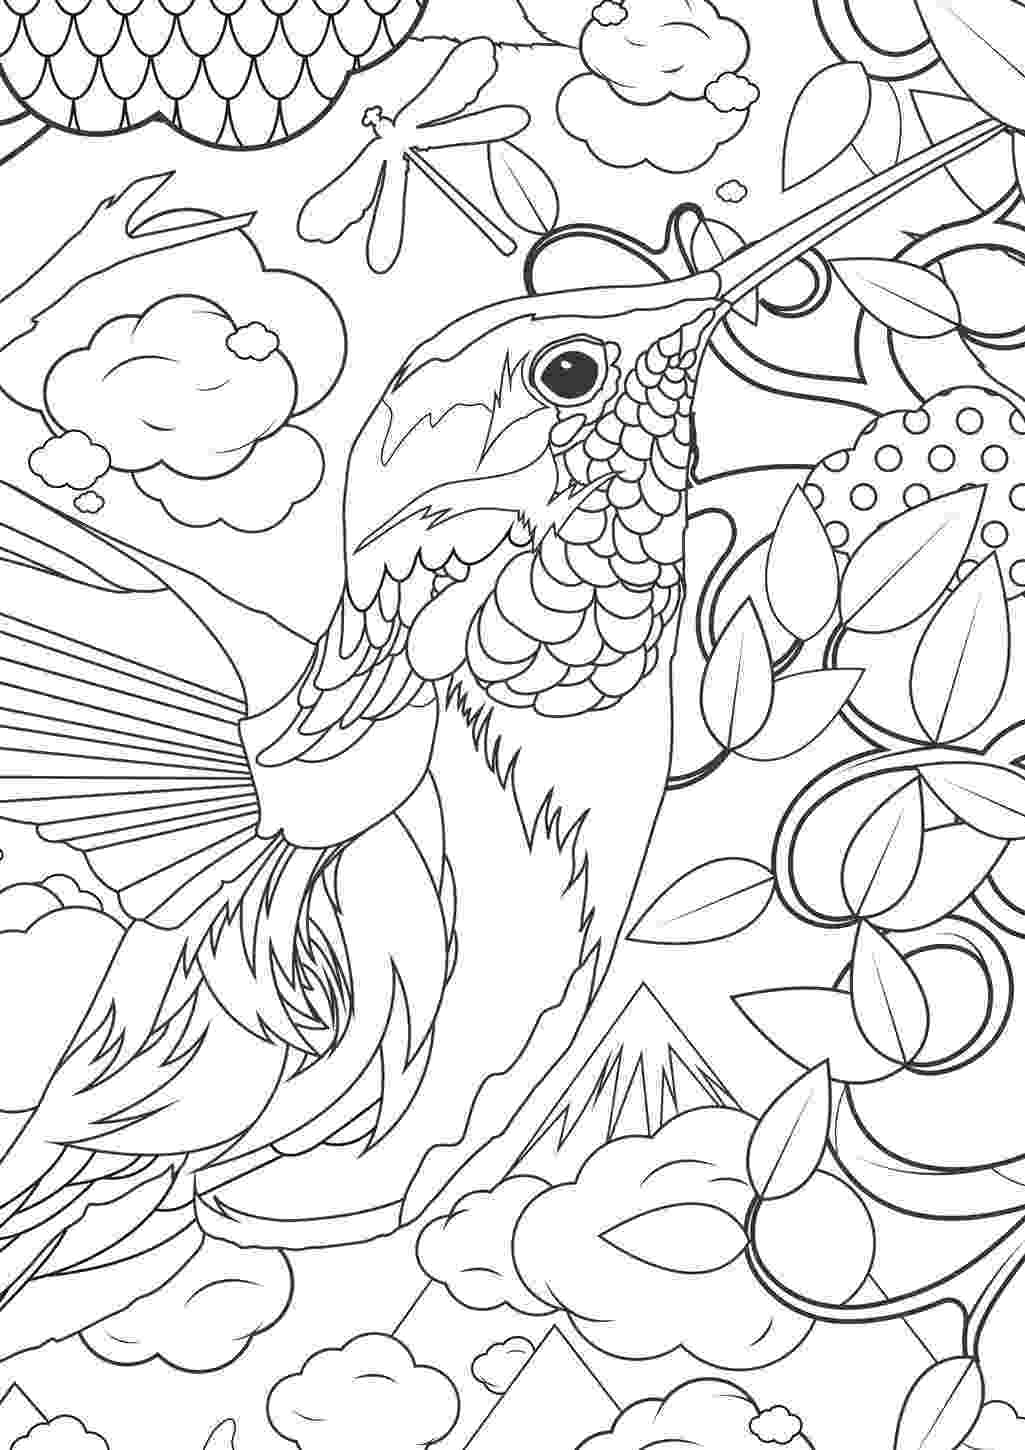 coloring sheets for older students difficult coloring pages for older children coloring home older sheets coloring students for